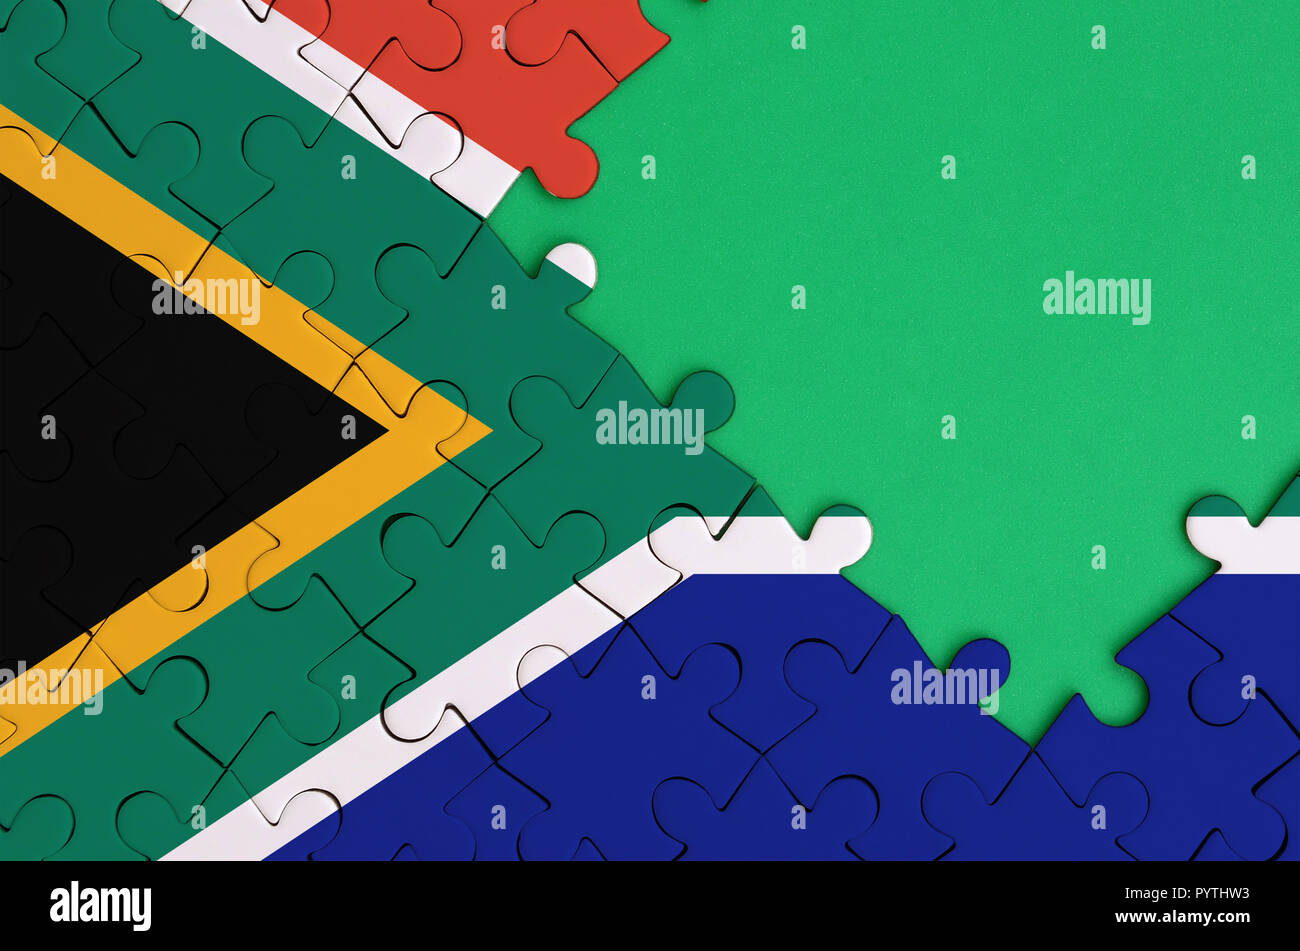 south africa flag is depicted on a completed jigsaw puzzle with free